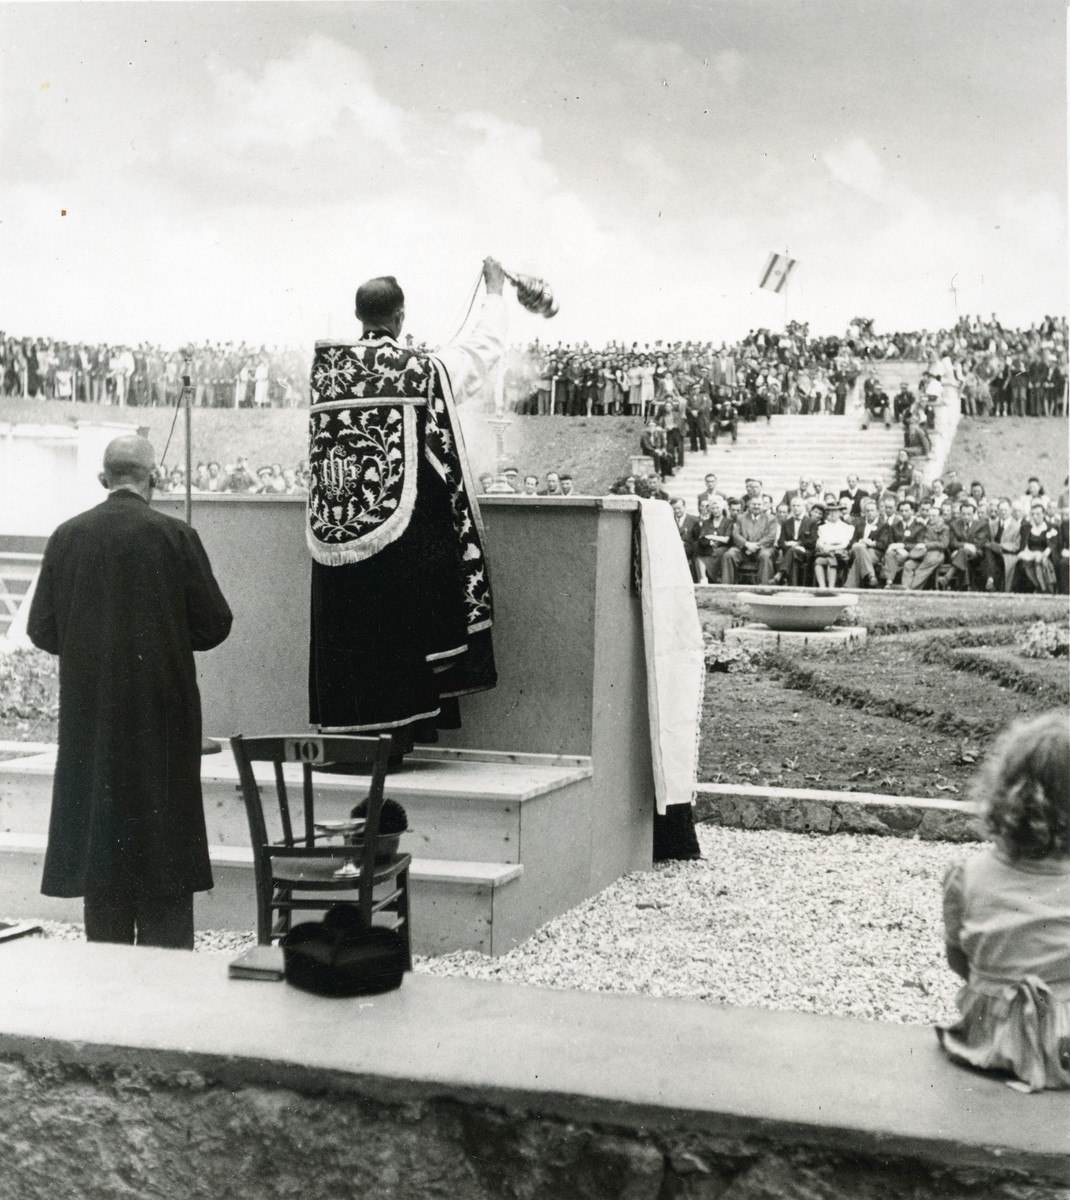 A priest leads prayers during the dedication of the monument to the victims of the Pocking concentration camp.